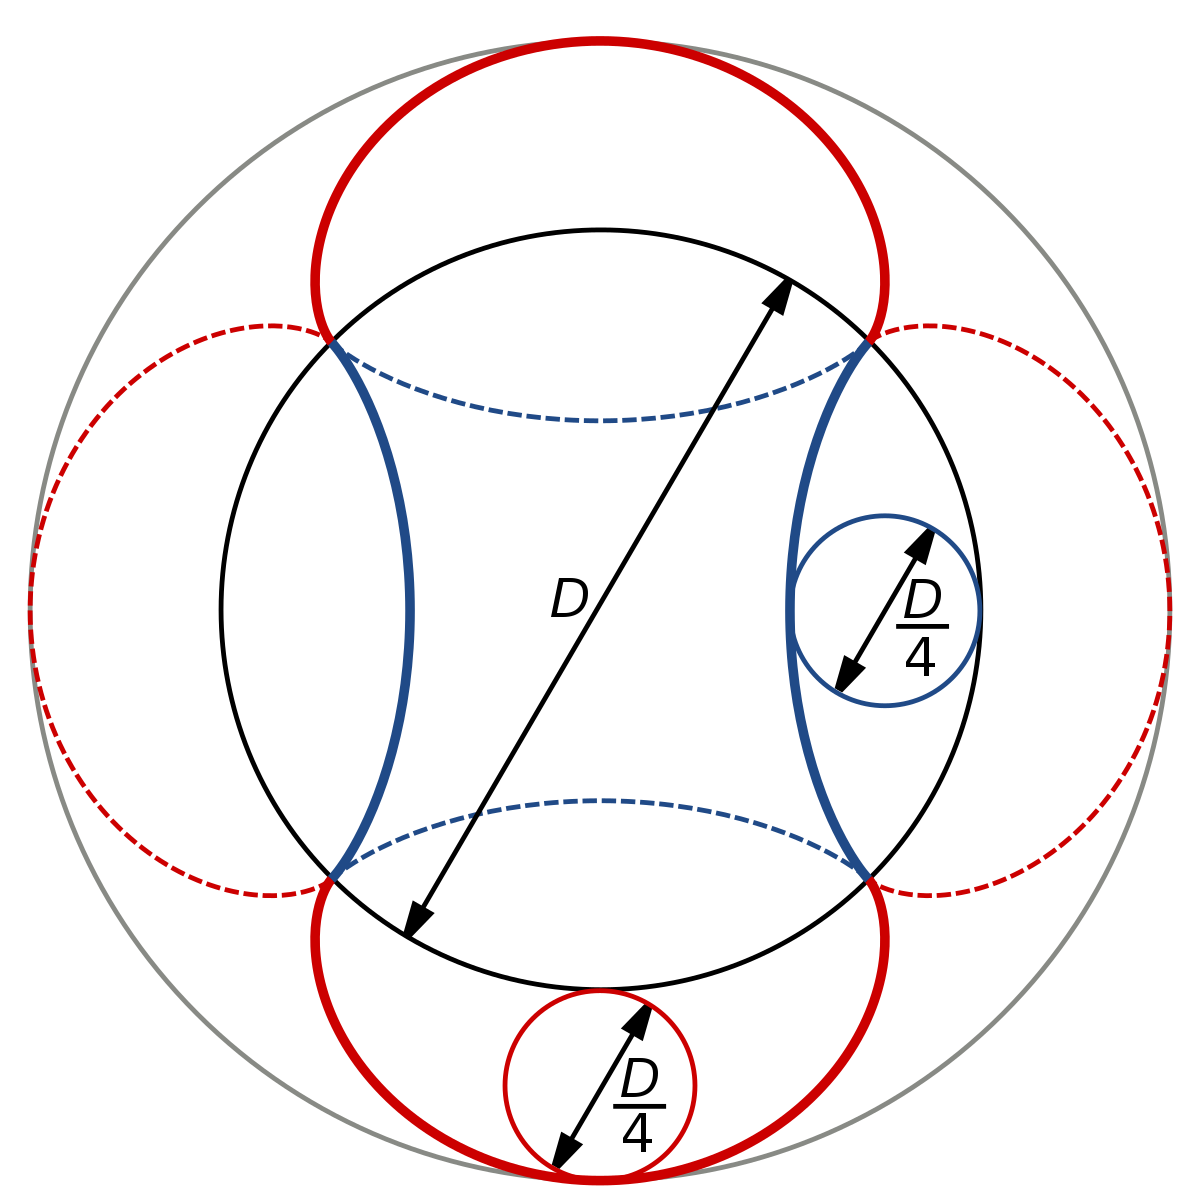 drawing device cycloid